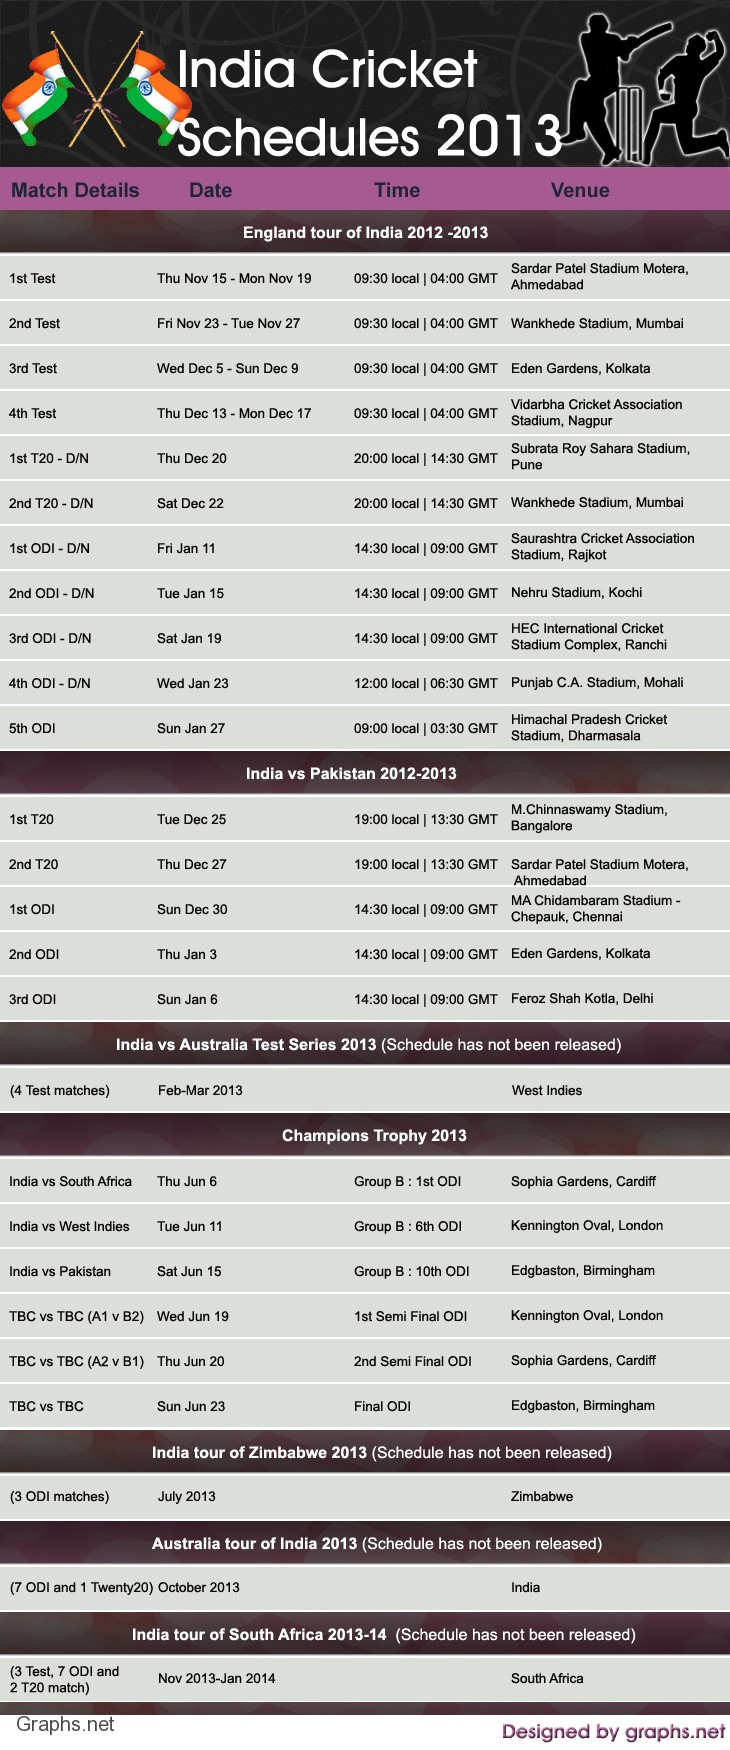 Cricket Schedules Of India For The Year 2013